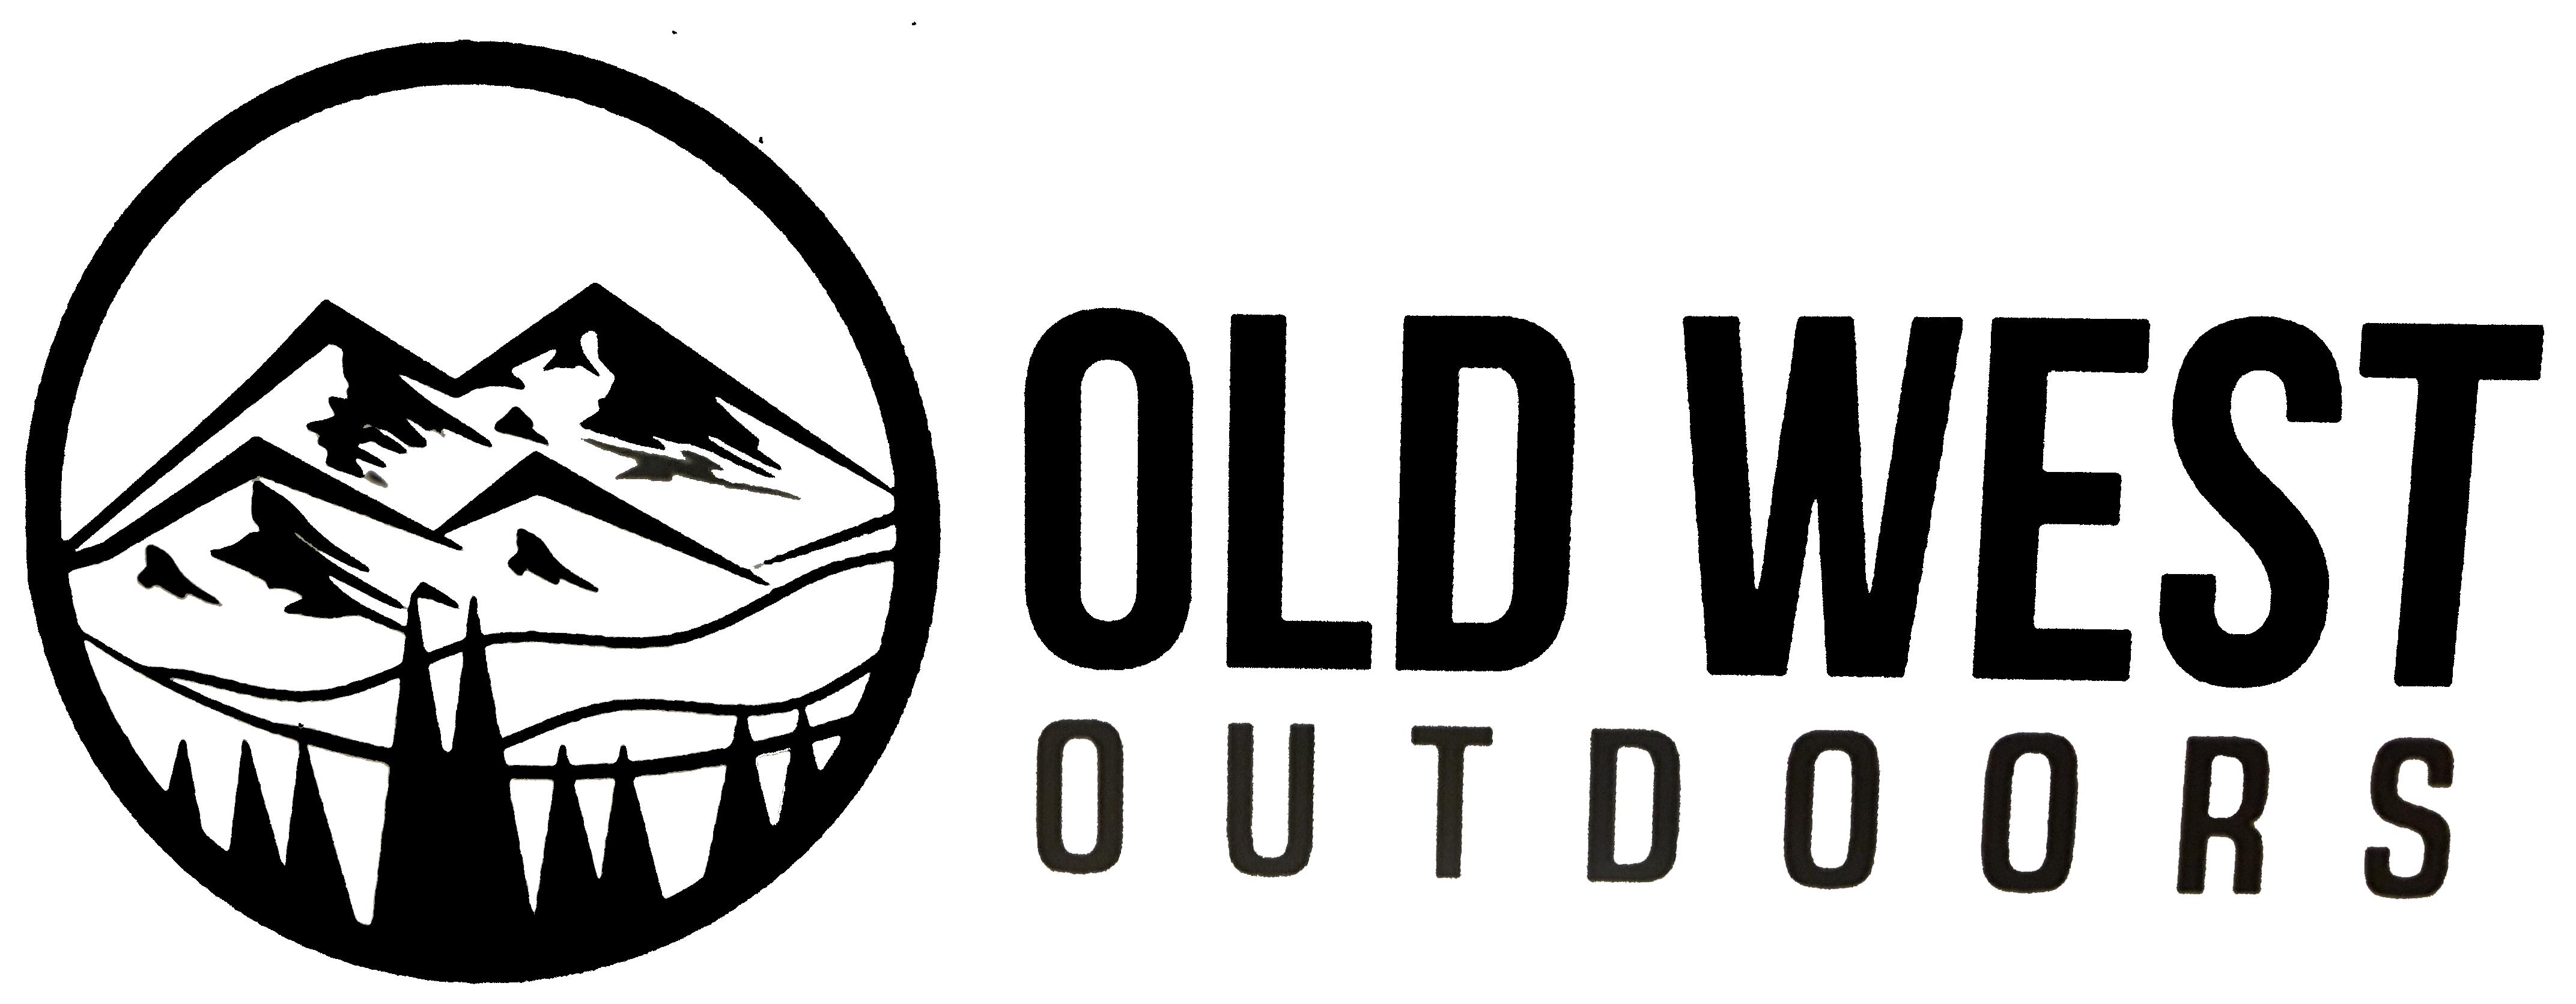 OW-Outdoors-Logo.png